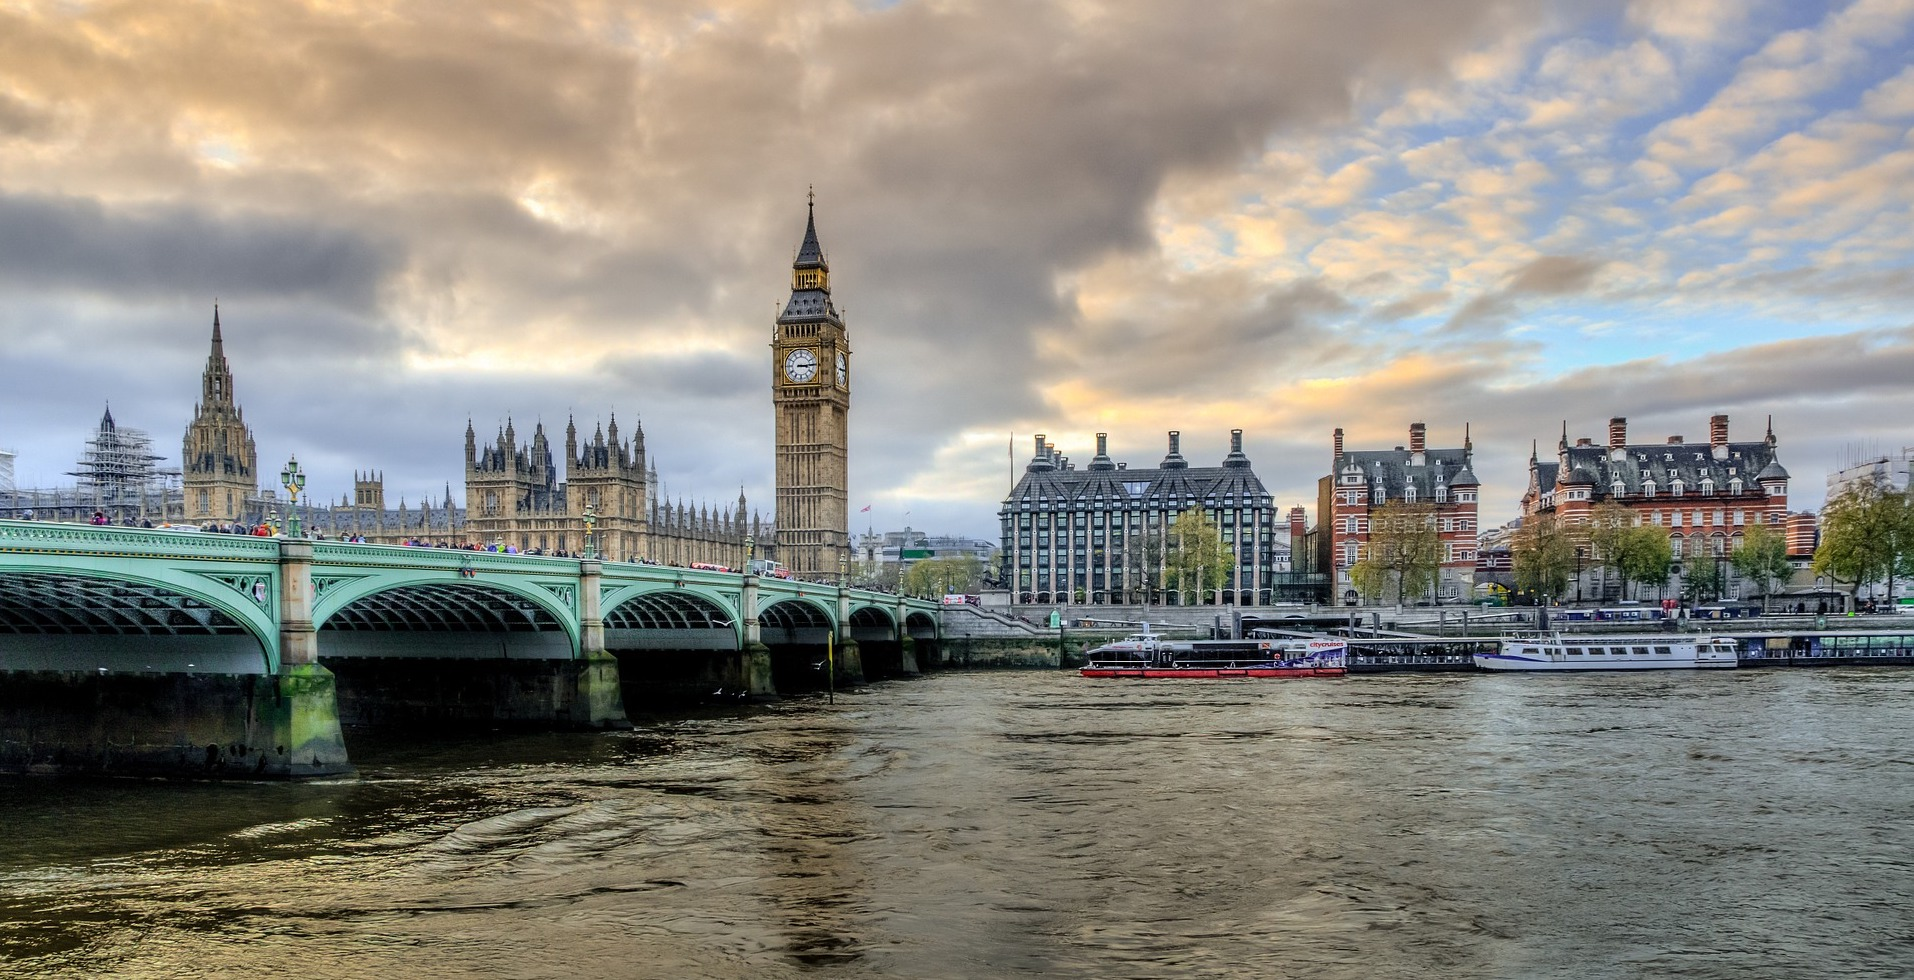 view of Big Ben and Thames in London